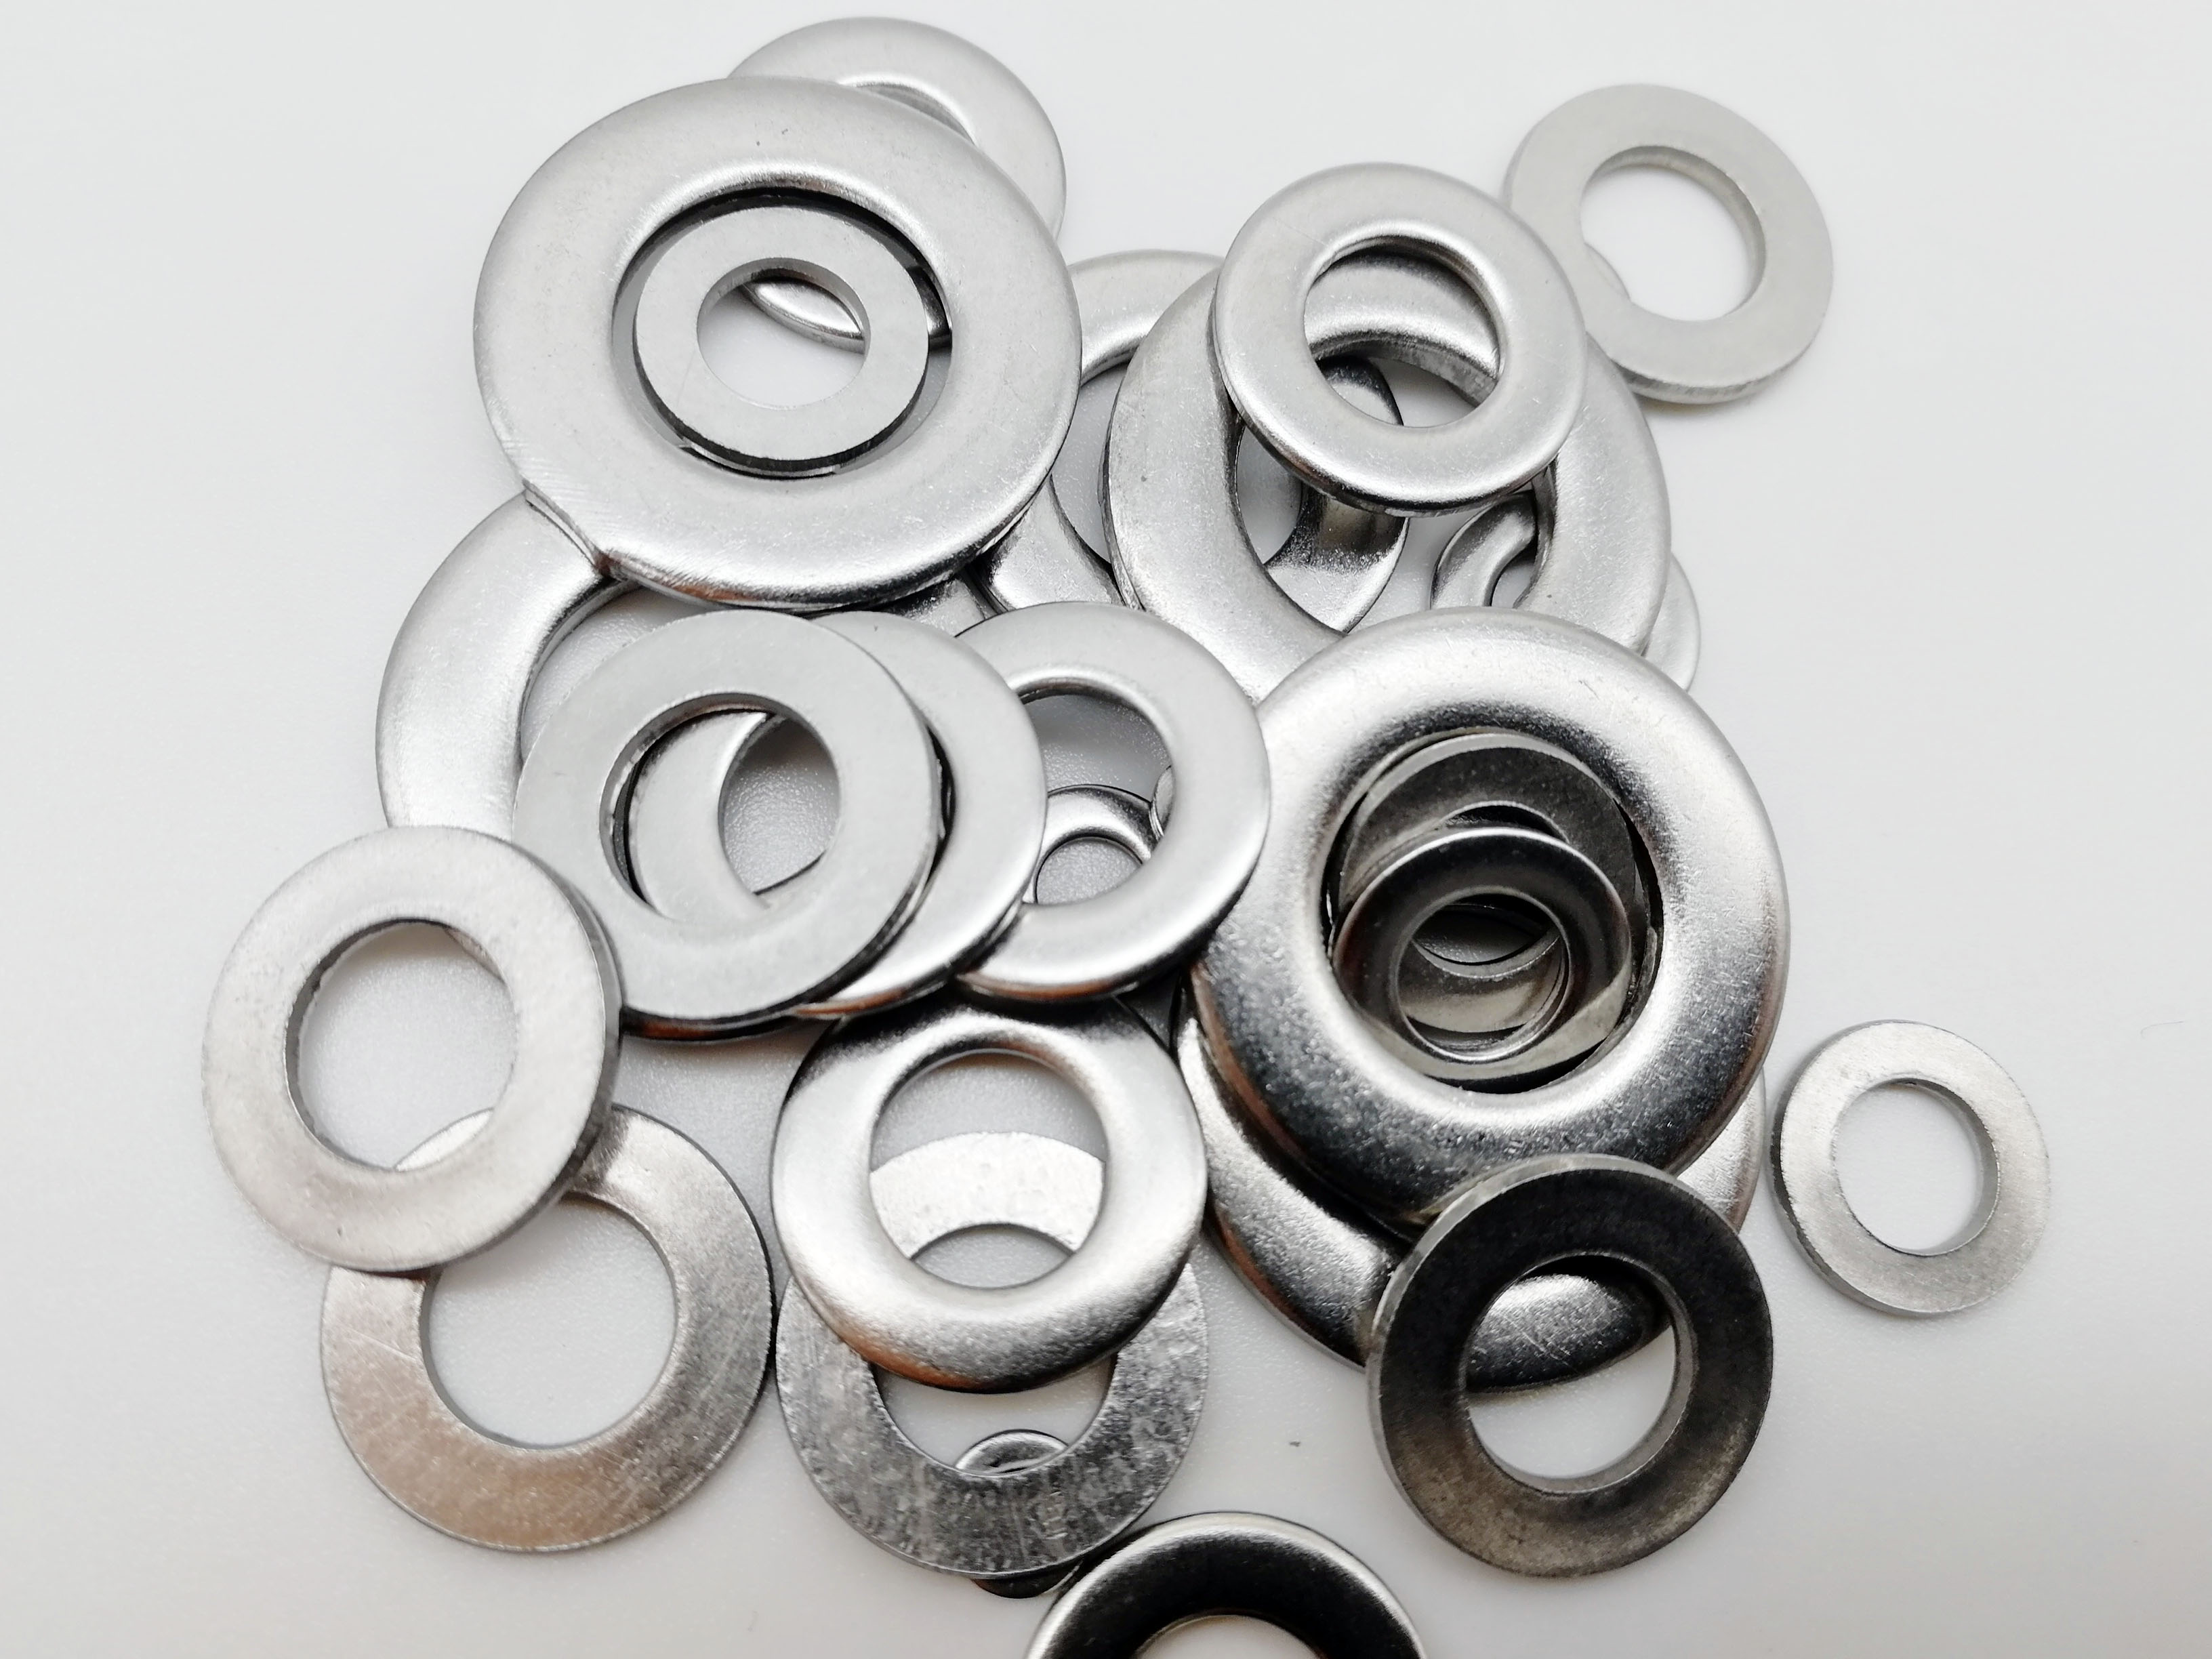 For Car 580PCS Silver Flat Washers Assortment Kit M2 M2.5 M3 M4 M5 M6 M8 M10 M12